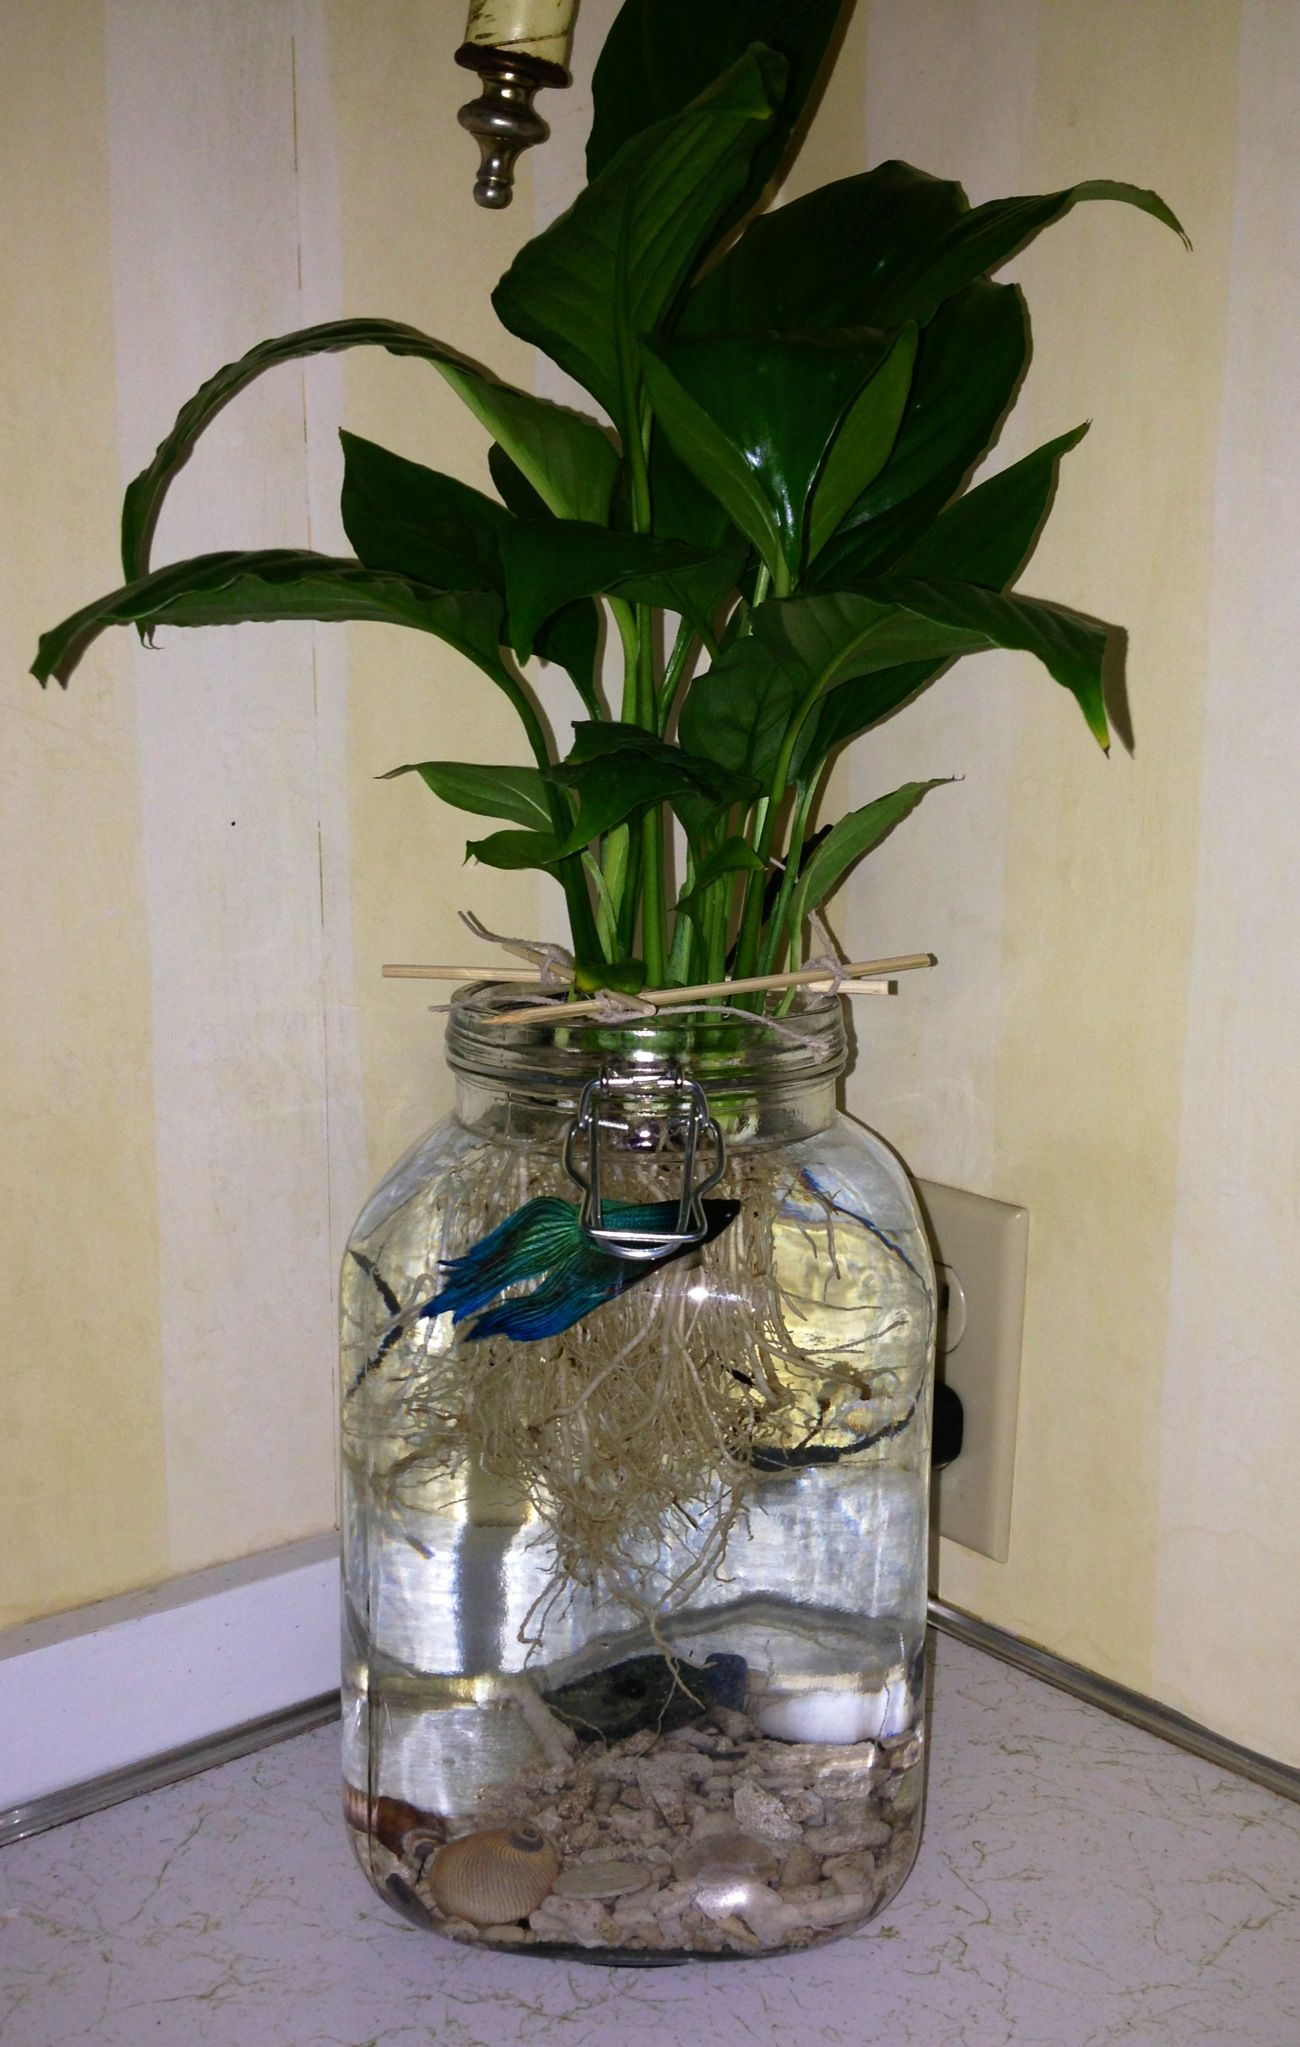 Betta fish with a peace lily in a simple jar betta fish for Plants for betta fish vase